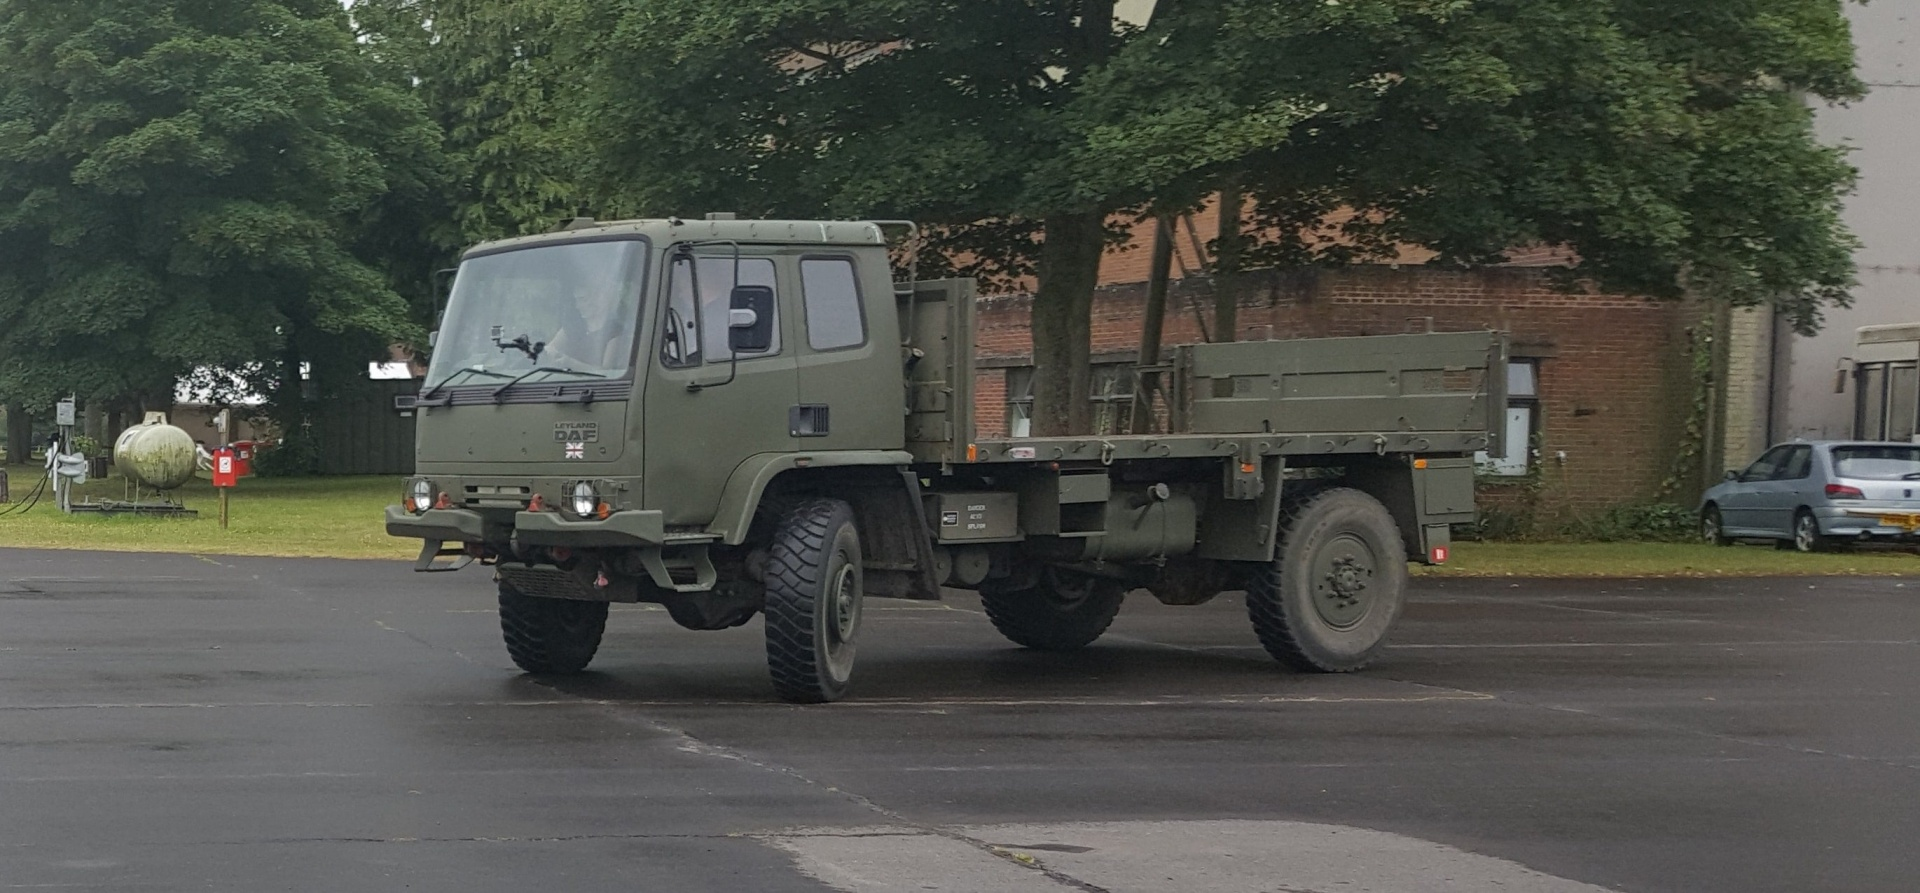 Leyland DAF 4x4 Army Truck Off Road Driving Day - Oxford-3